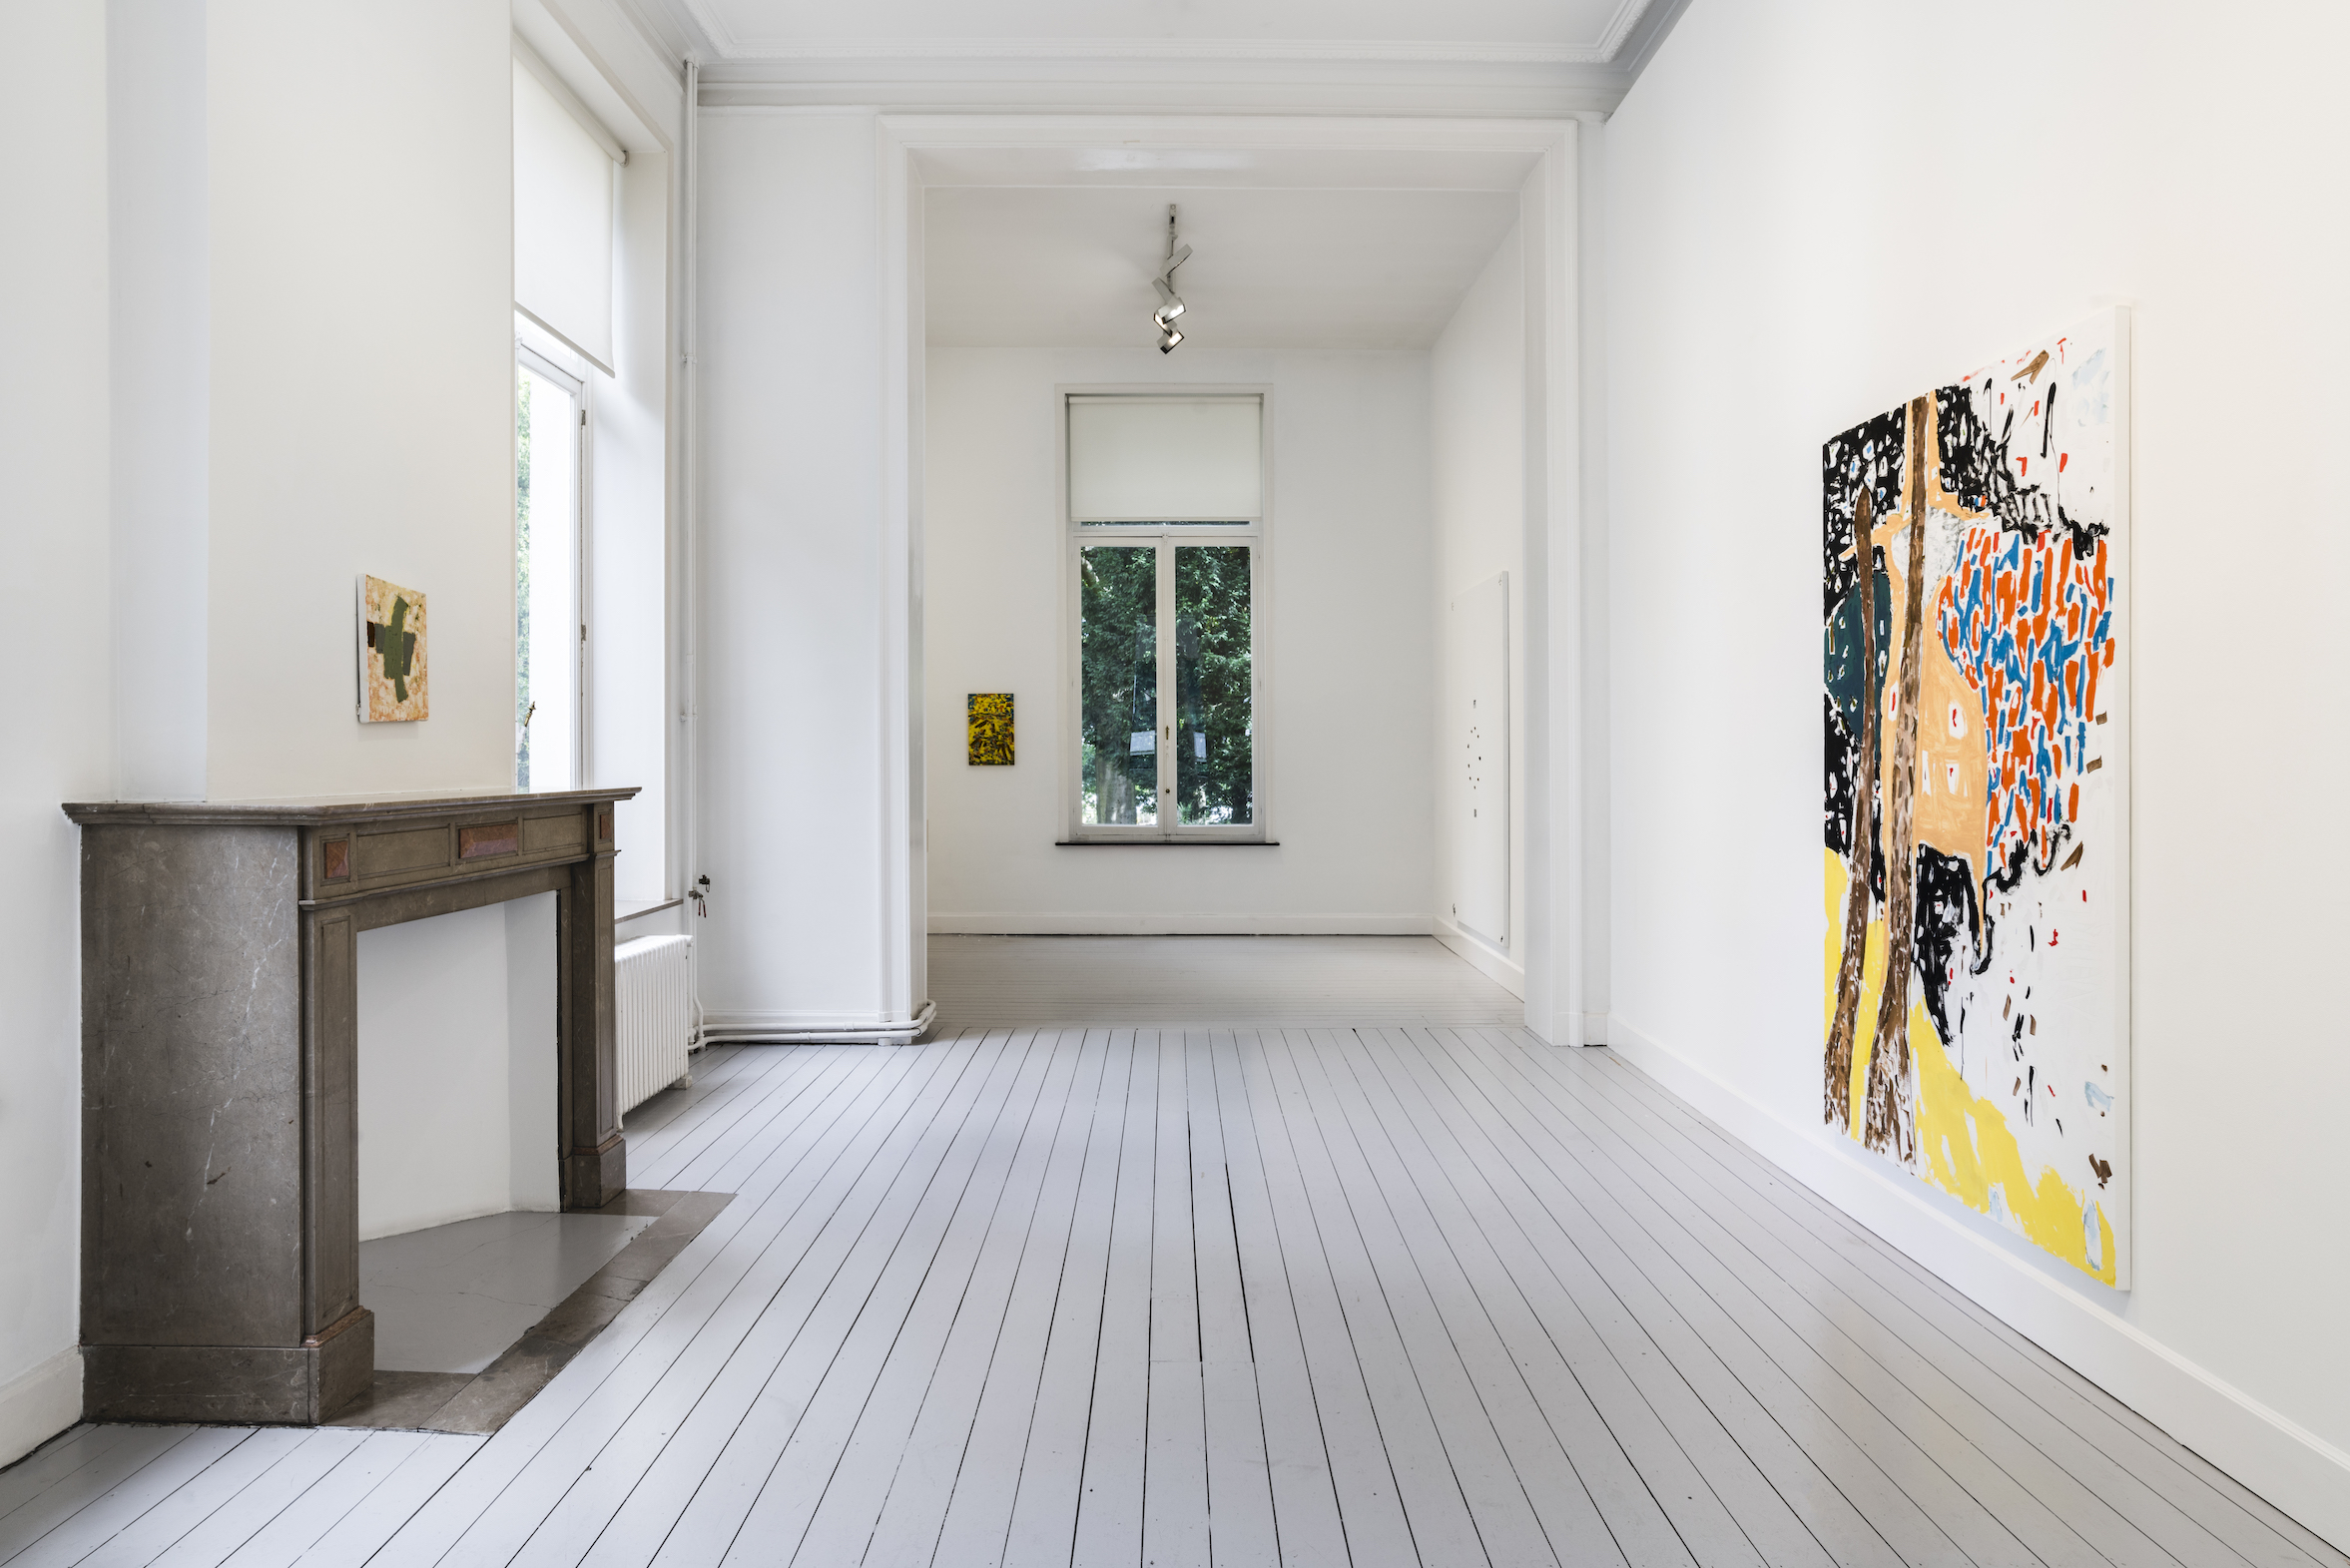 Installation View 2: Richard Aldrich, at Gladstone Gallery, Brussels, 2020 Courtesy the artist and Gladstone Gallery, New York and Brussels